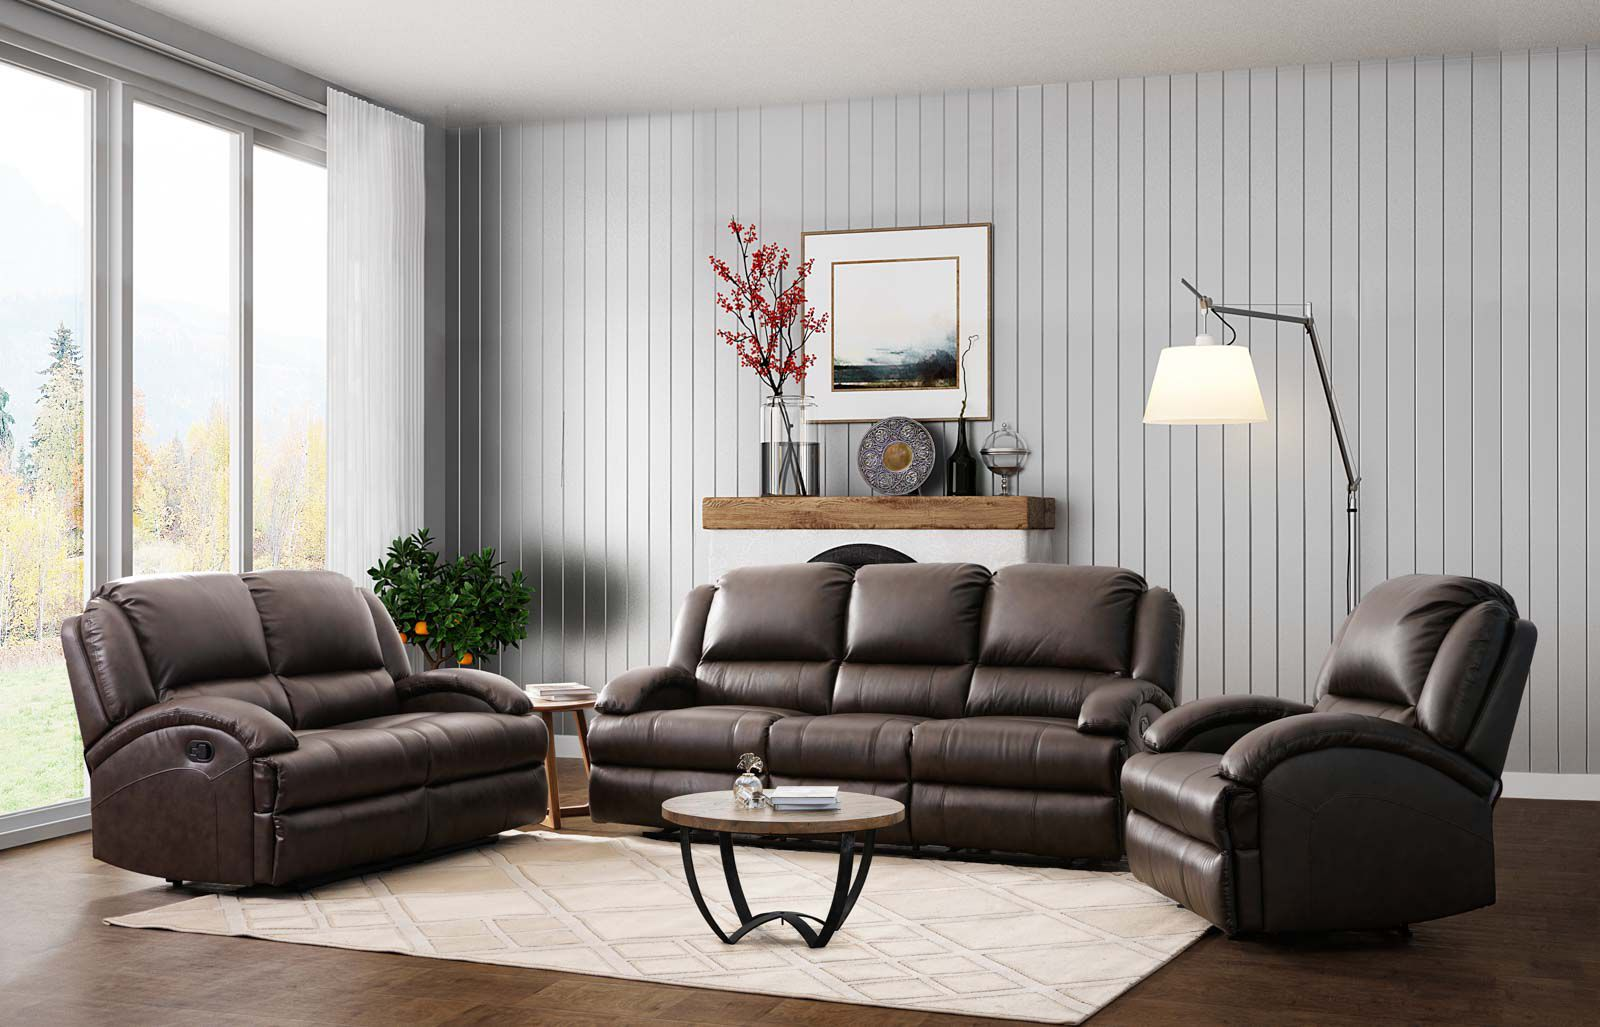 Abbyson Living Giorgio 3 Pc Top Grain Leather Reclining Sofa Set